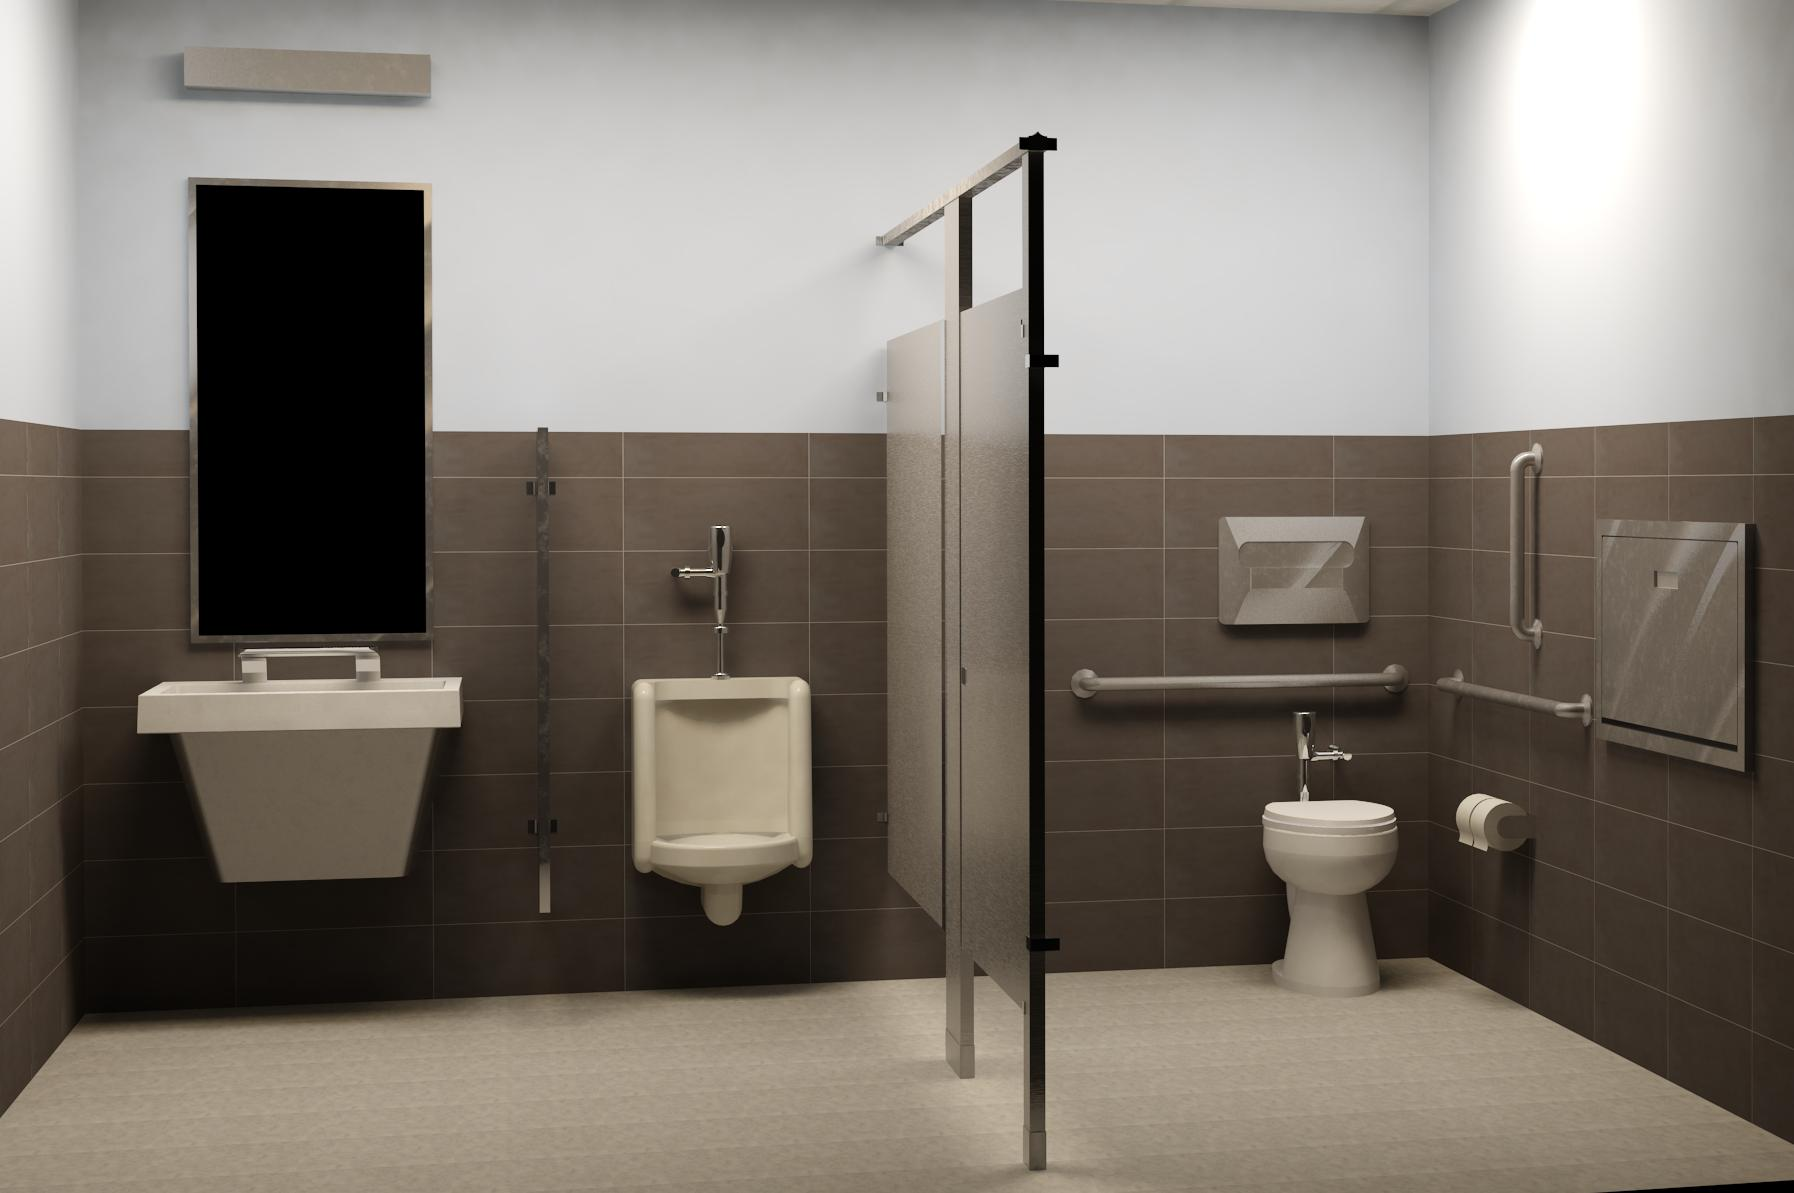 Bradley Bathroom Partitions Property bradley bimrevit resource portal | bradley revit library